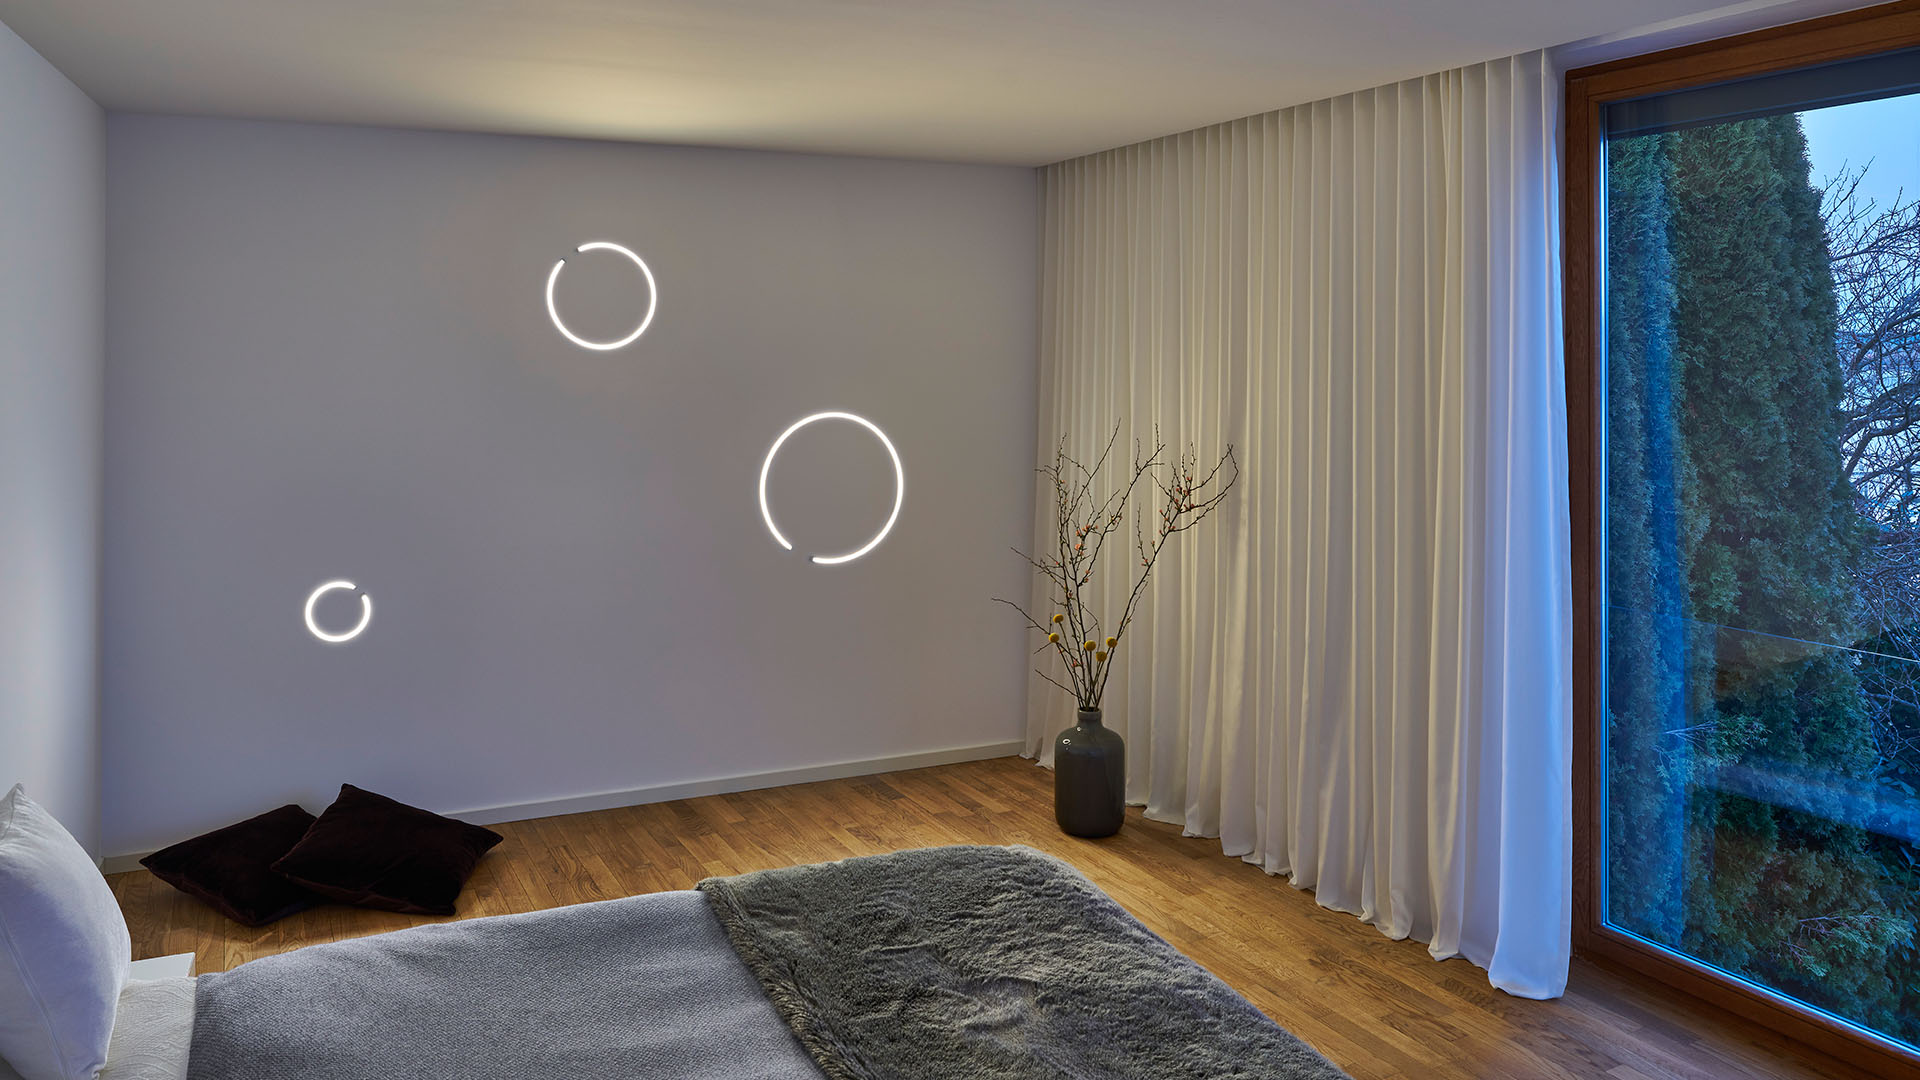 Mito Soffito Occhio 3 | Hoogebeen Interieur